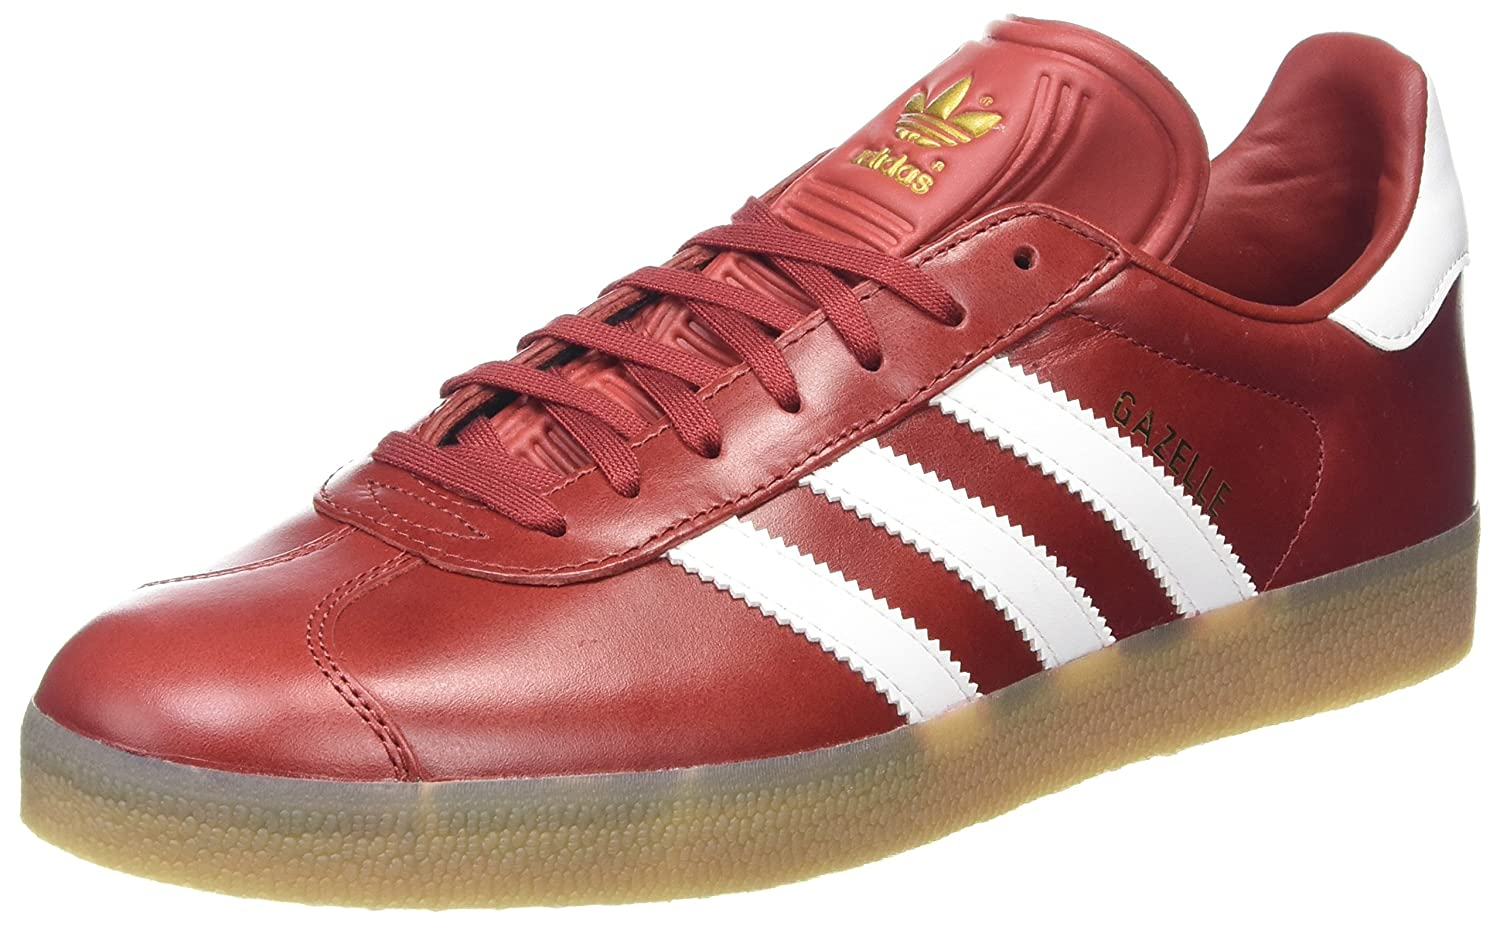 adidas Men's Gazelle Casual Sneakers B0714NWZBL 8 D(M) US|Red